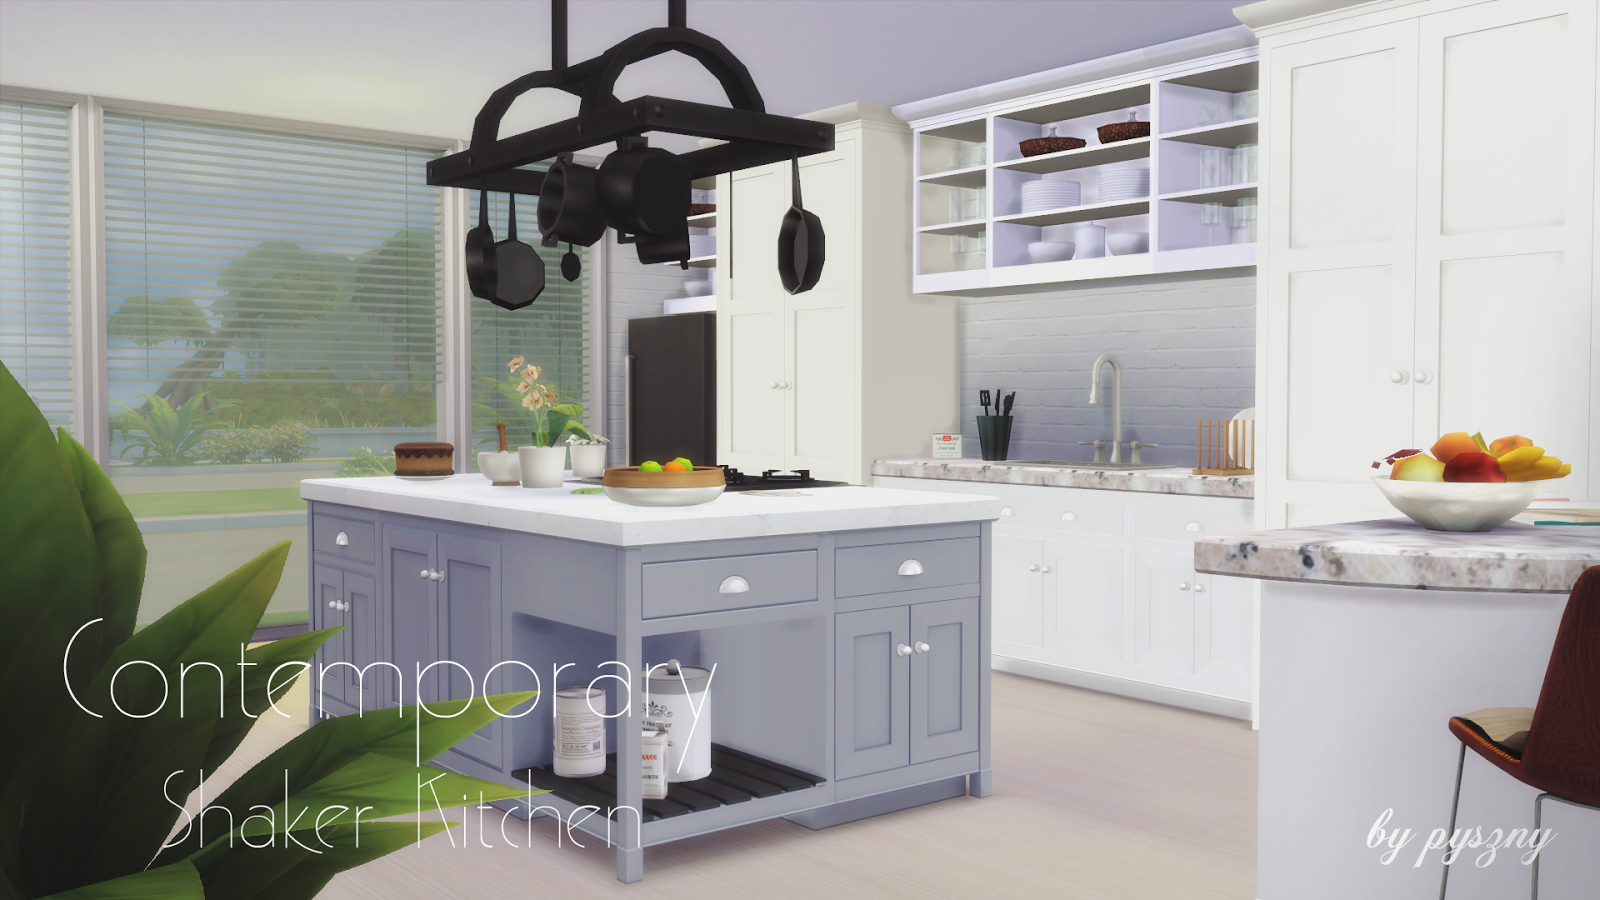 sims 4 cc's - the best: contemporary shaker kitchen set by pyszny, Badezimmer ideen